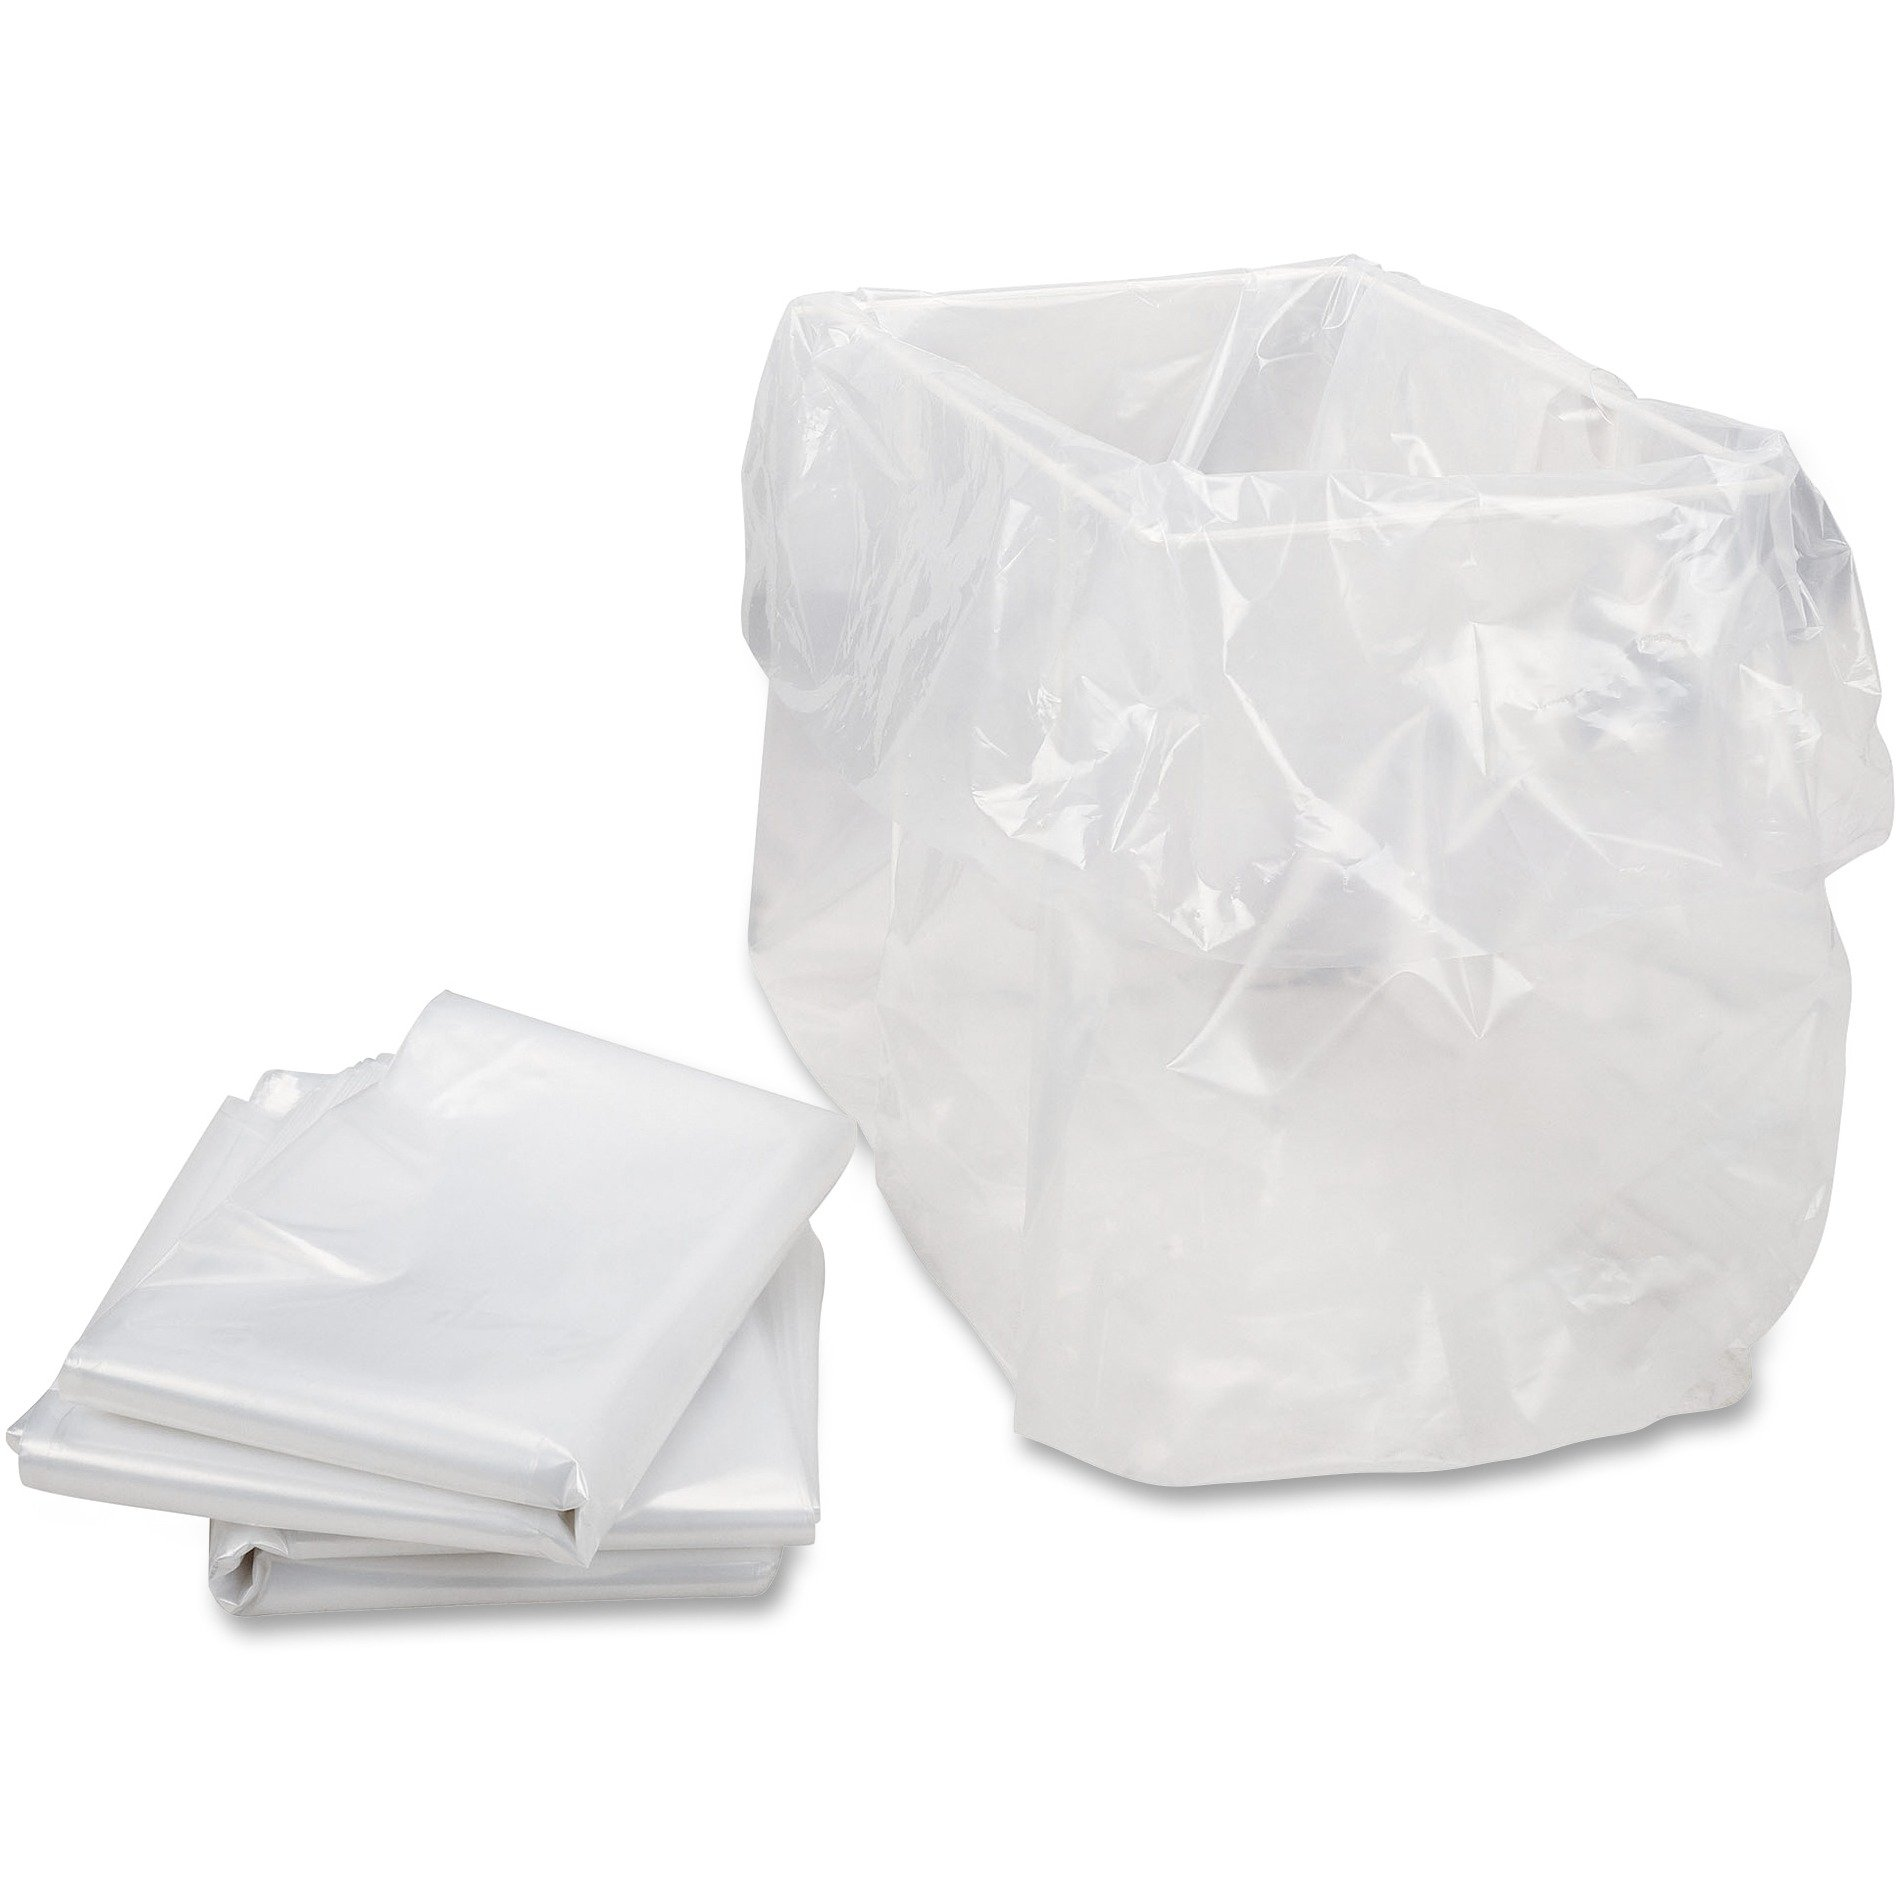 HSM of America 1310 Shredder Accessories - HSM Waste Collection Bags (For Use with 104/105/B22 Series) (100/Ctn)